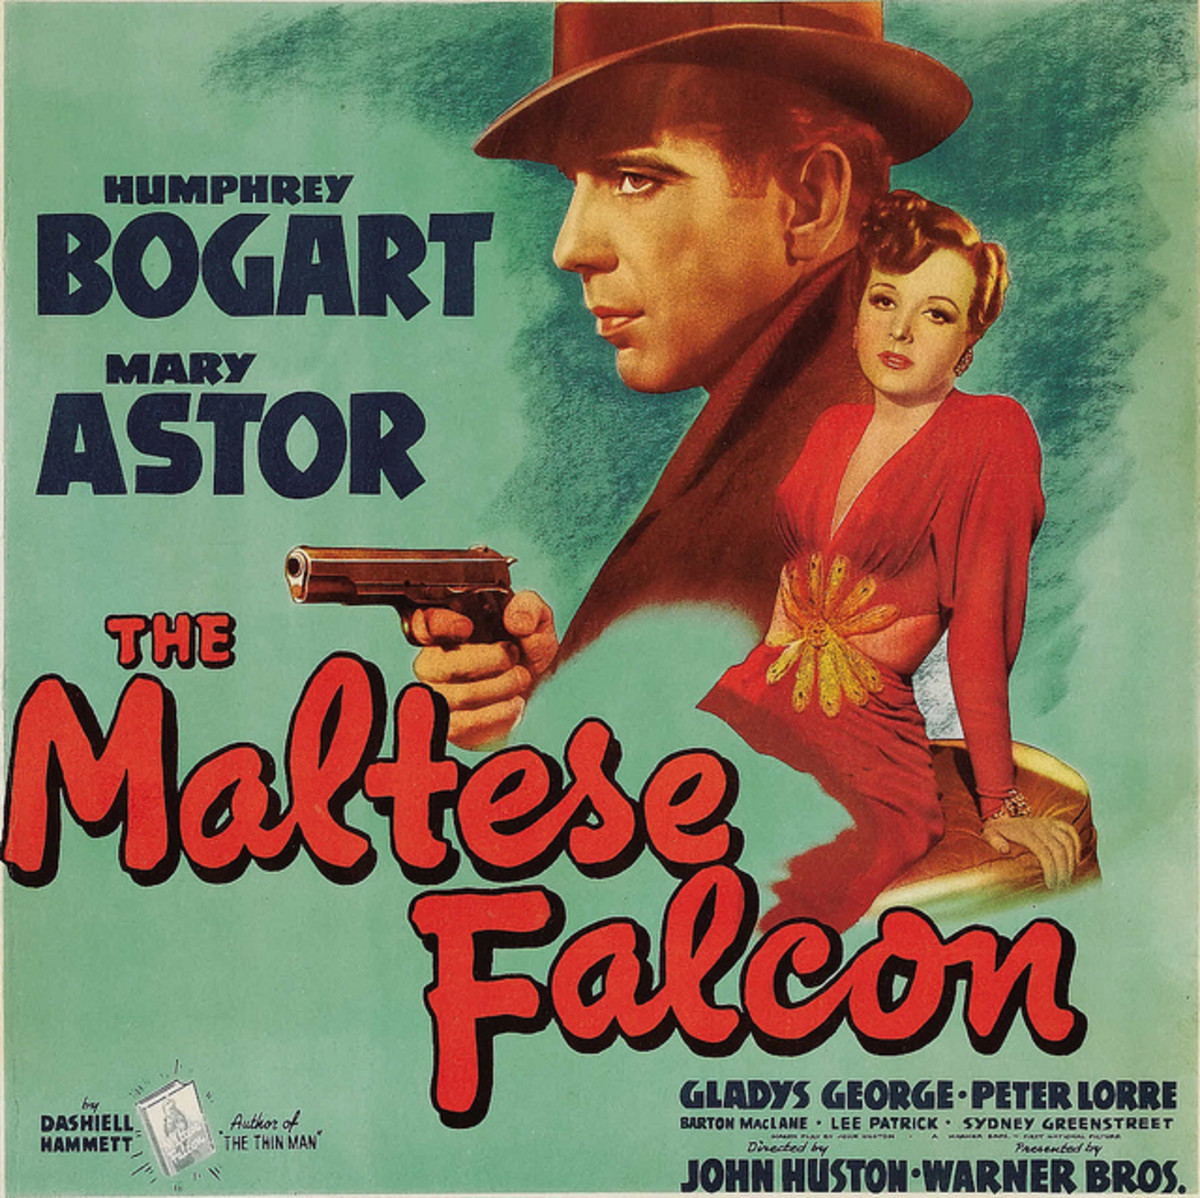 "The Maltese Falcon Warner Brothers Six Sheet  (1941) 14"" X 22""  Humphrey Bogart, Mary Astor"